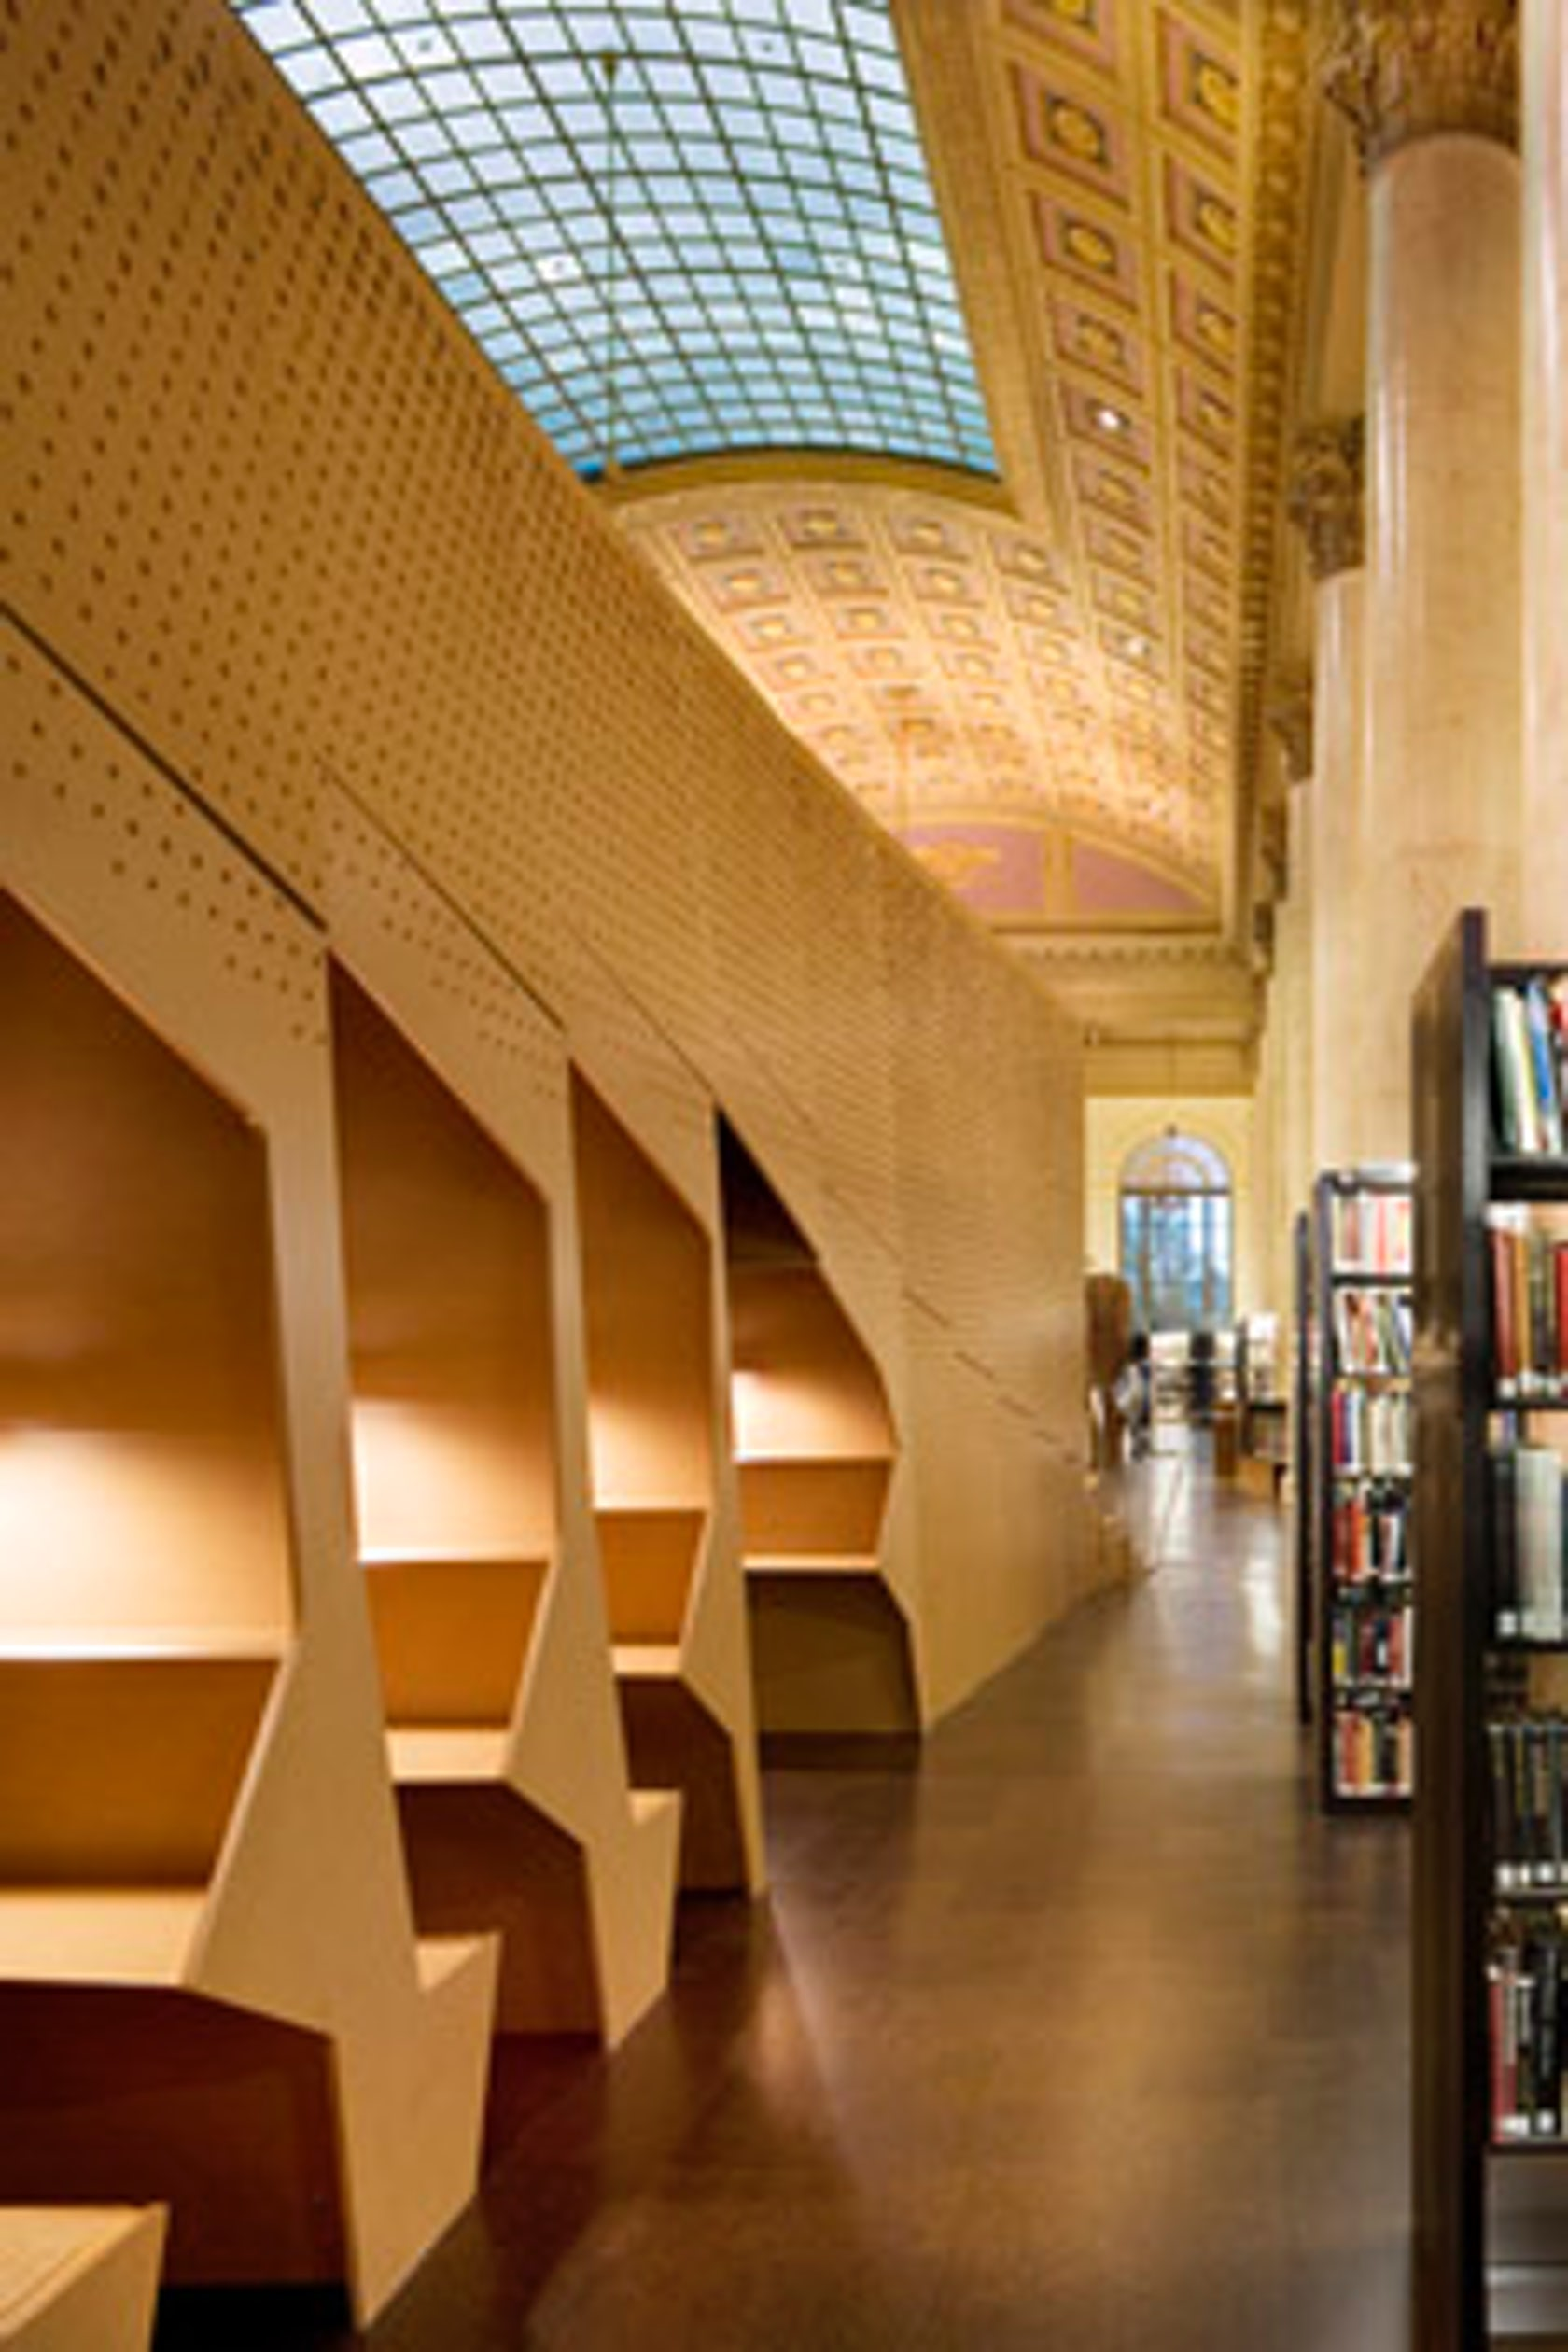 Rhode island school of design library architizer for Rhode island interior designers